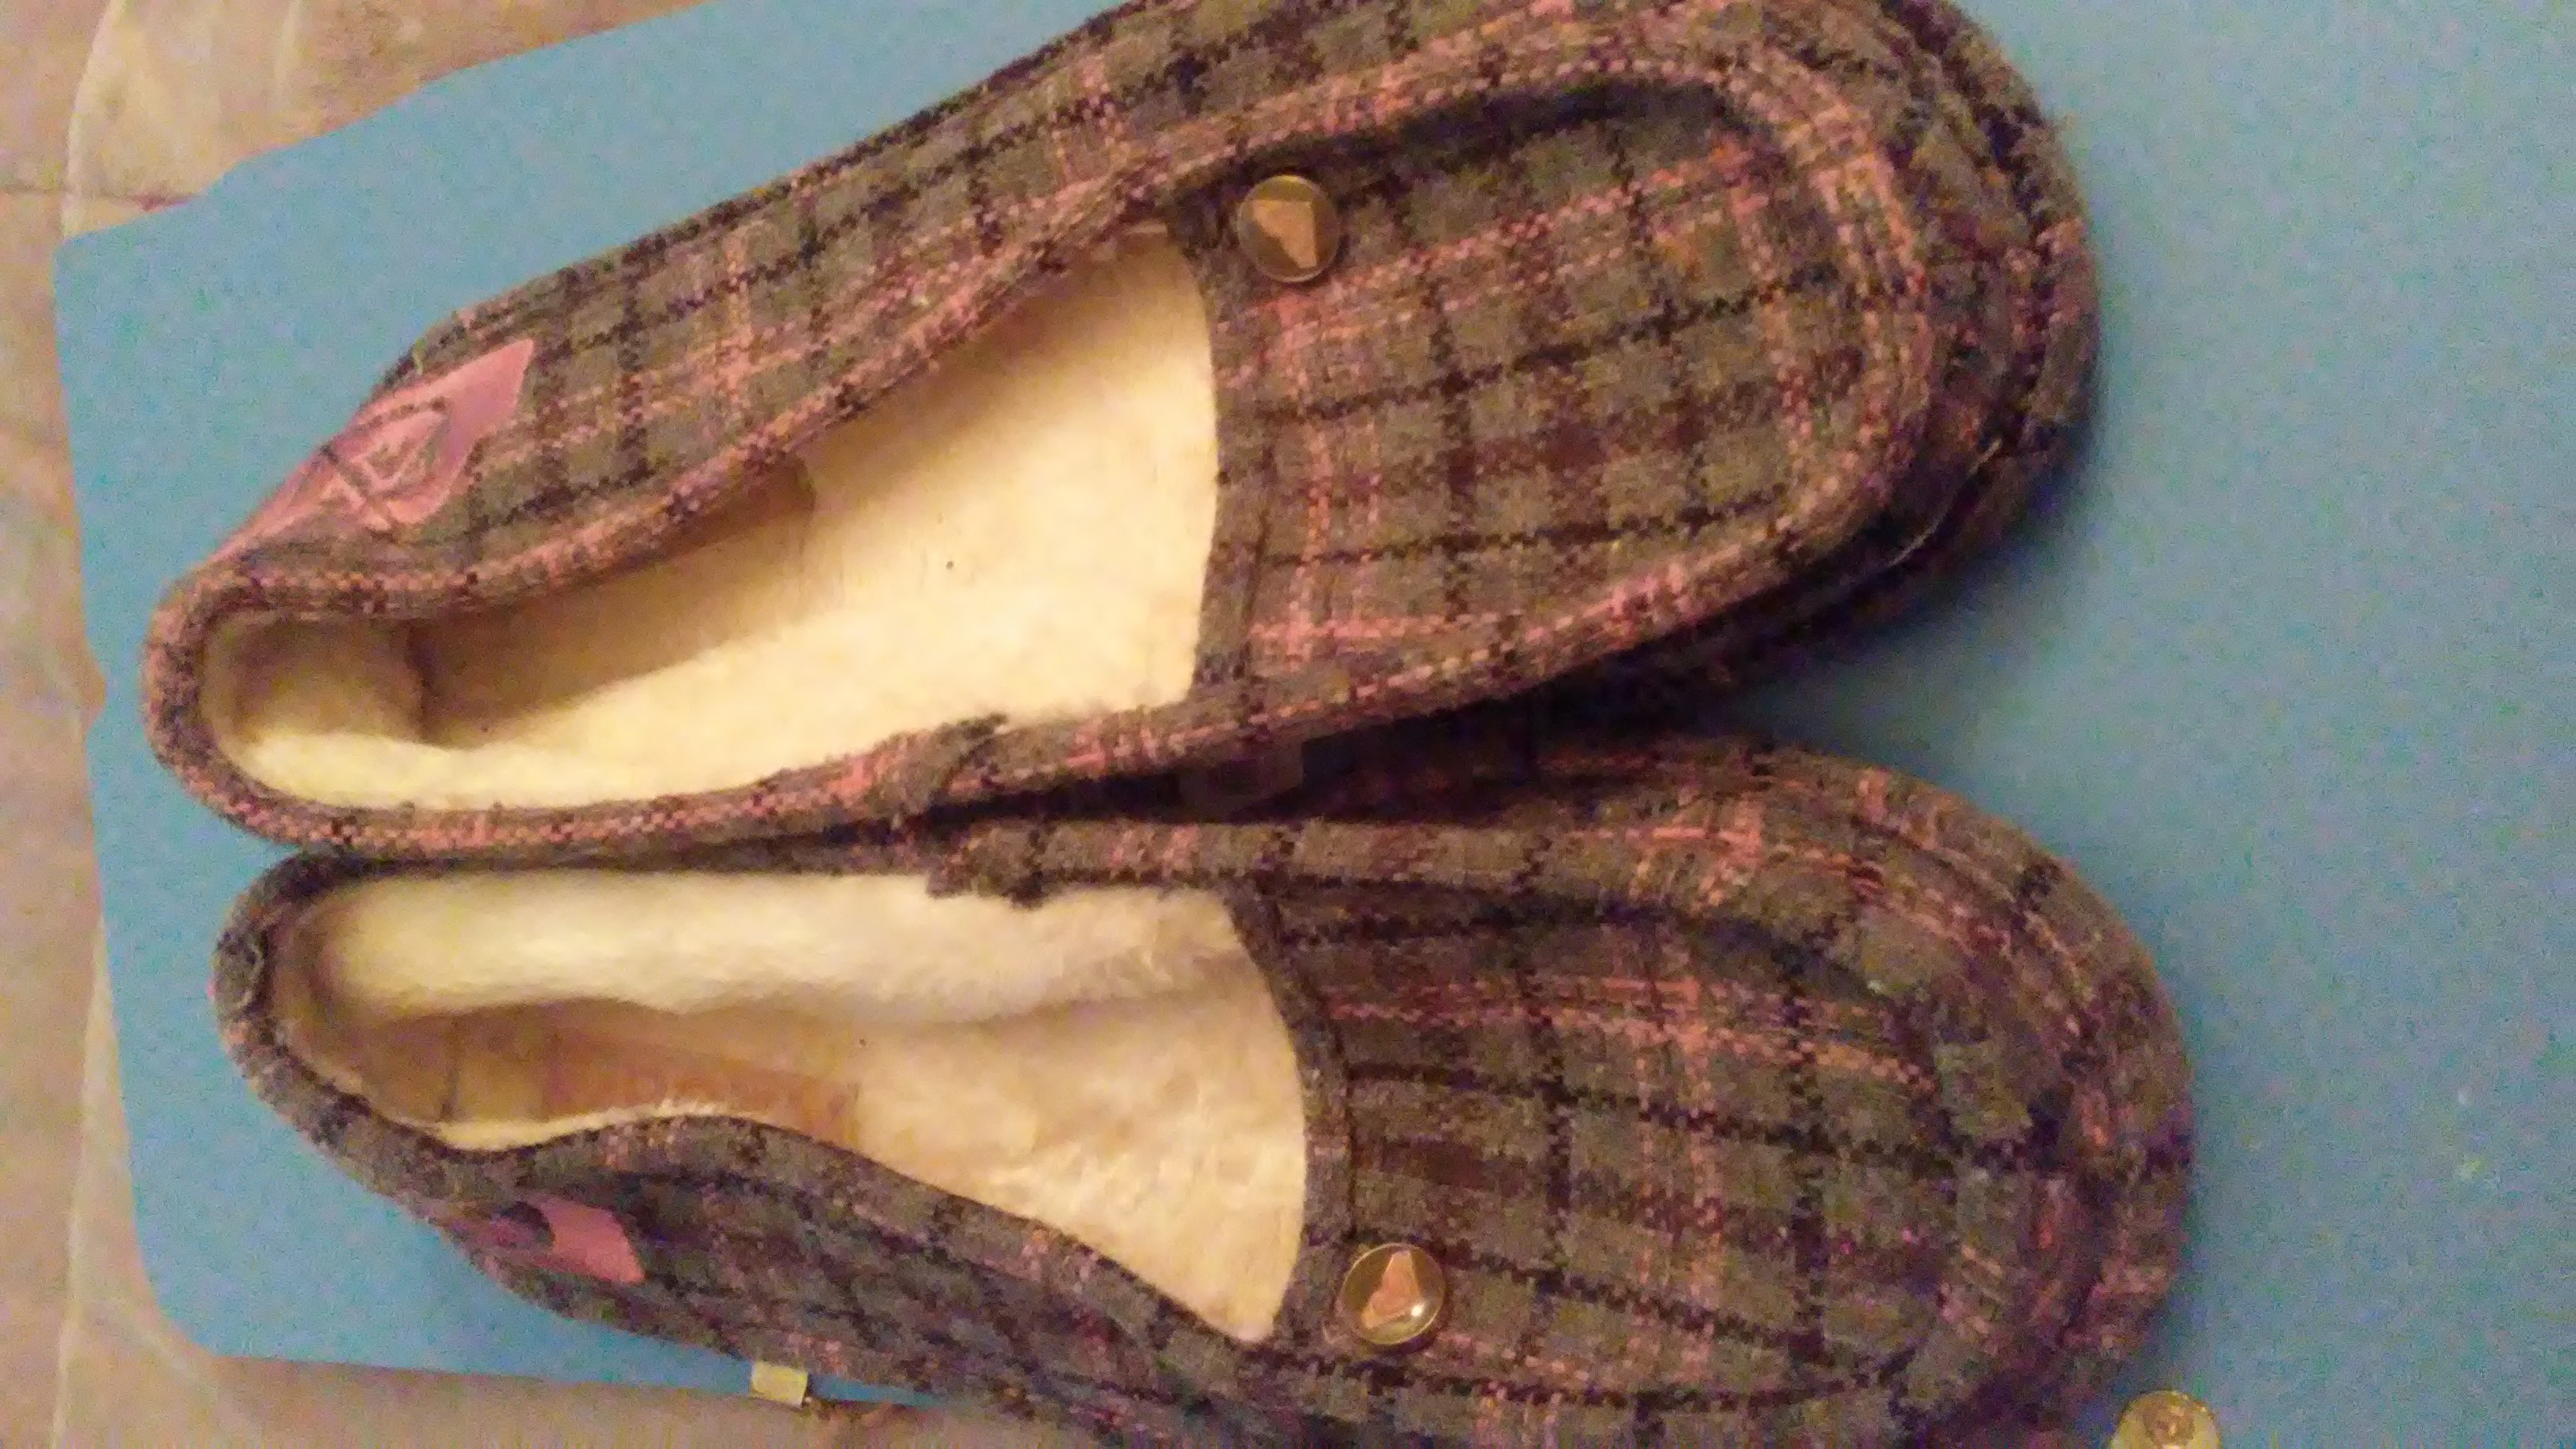 Gently used kids house slippers